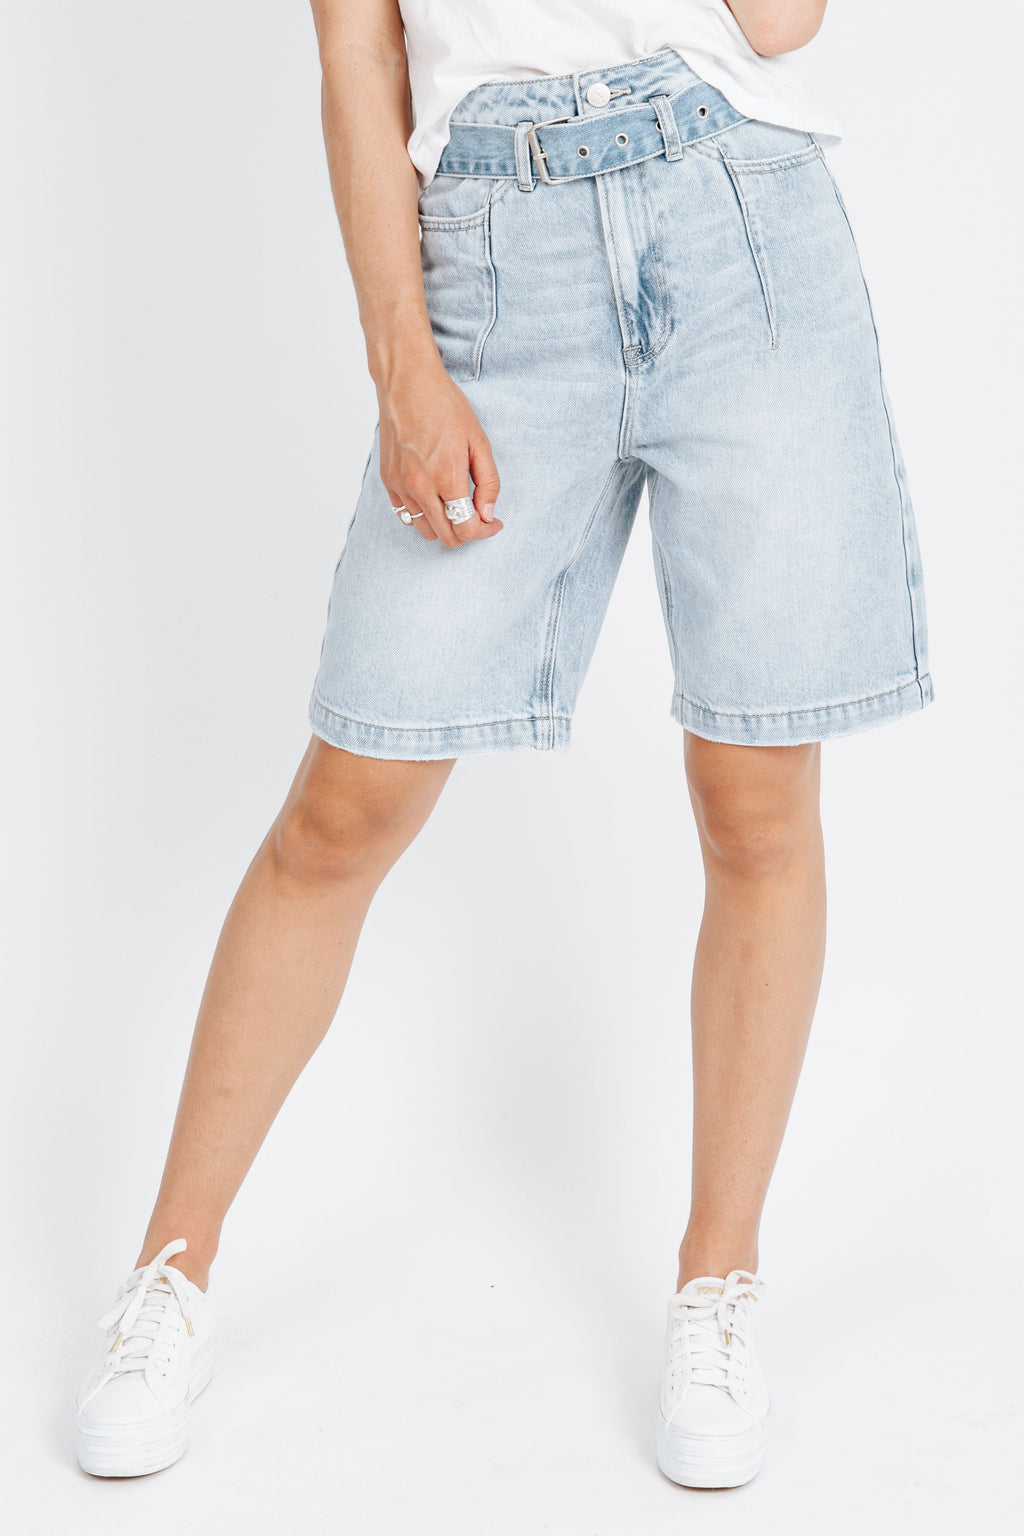 The Radford Belted Denim Short in Light Blue Wash, studio shoot; front view